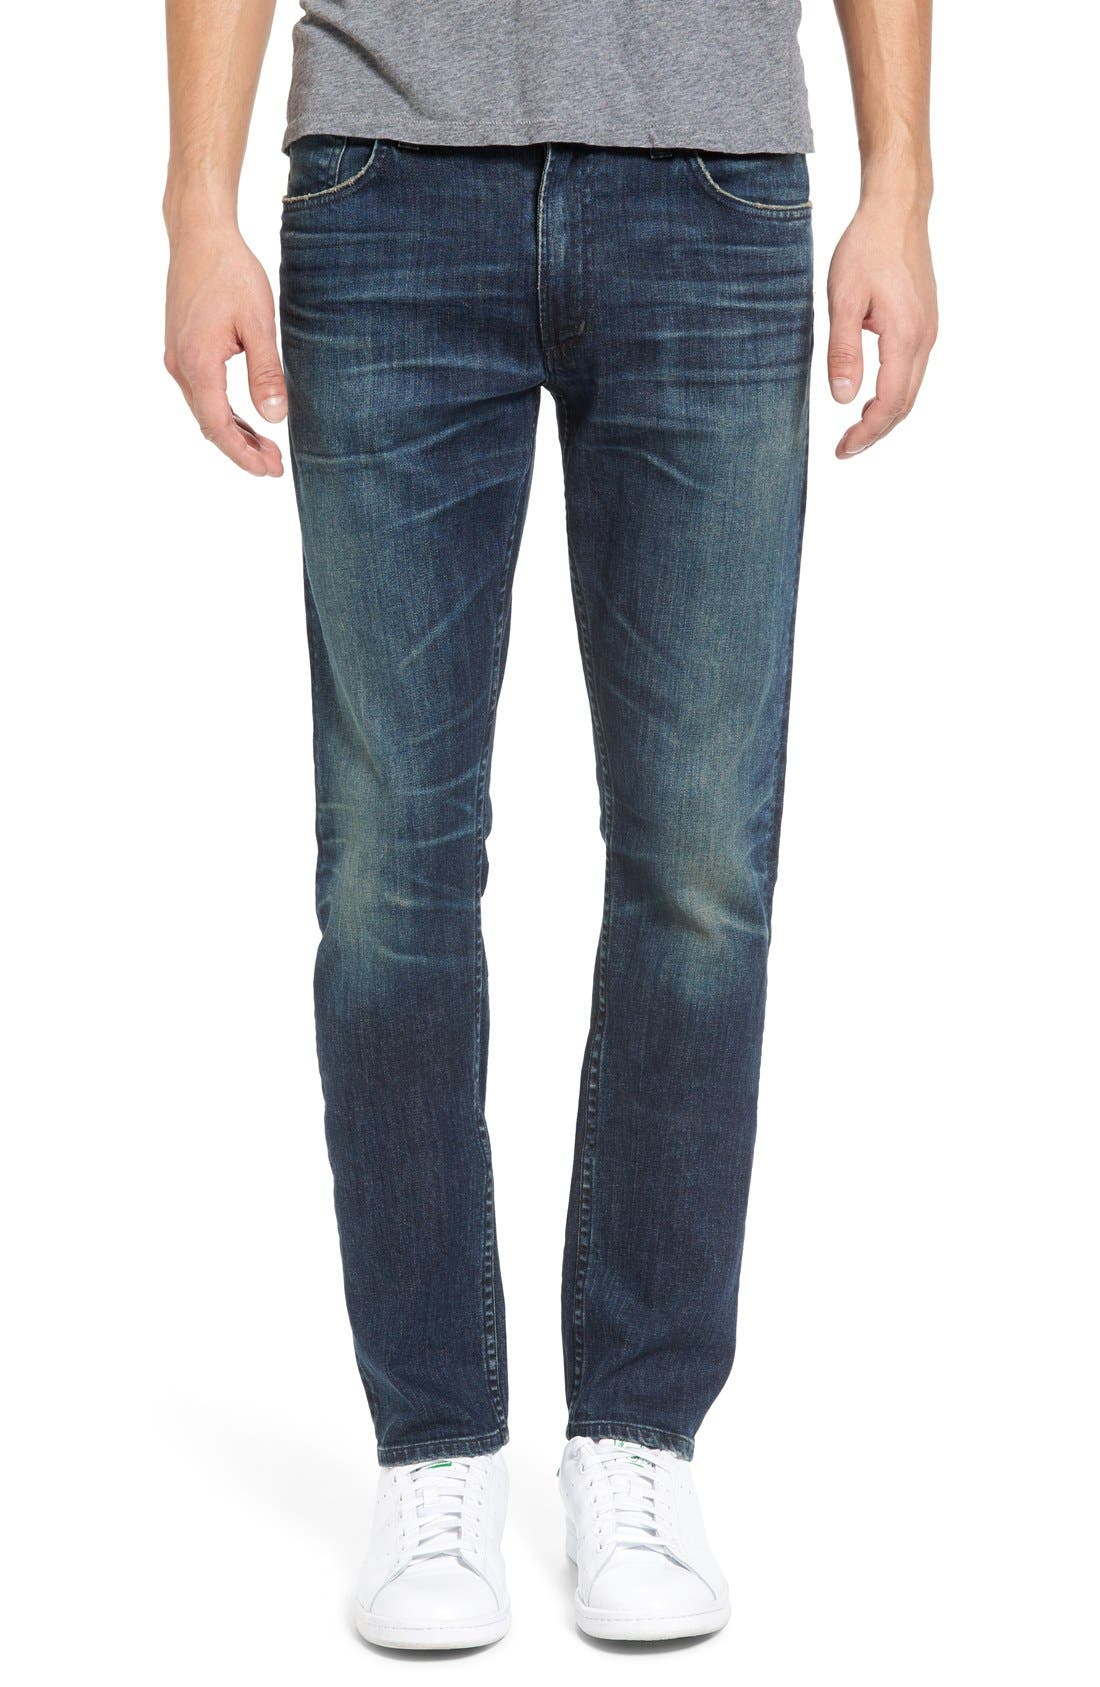 Bowery Slim Fit Jeans,                             Main thumbnail 1, color,                             463